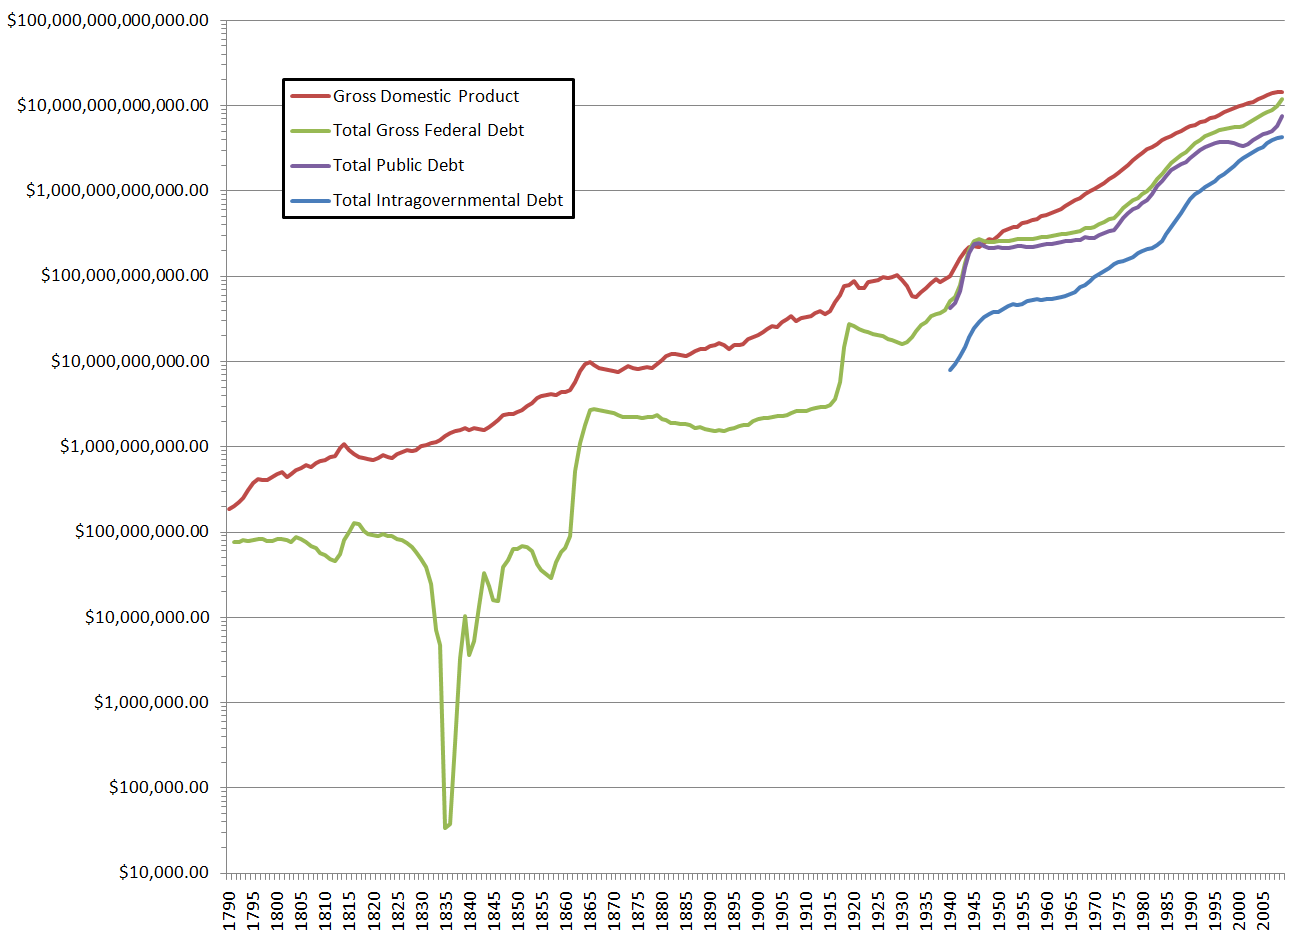 File:Log US GDP and Debt Graph.png.